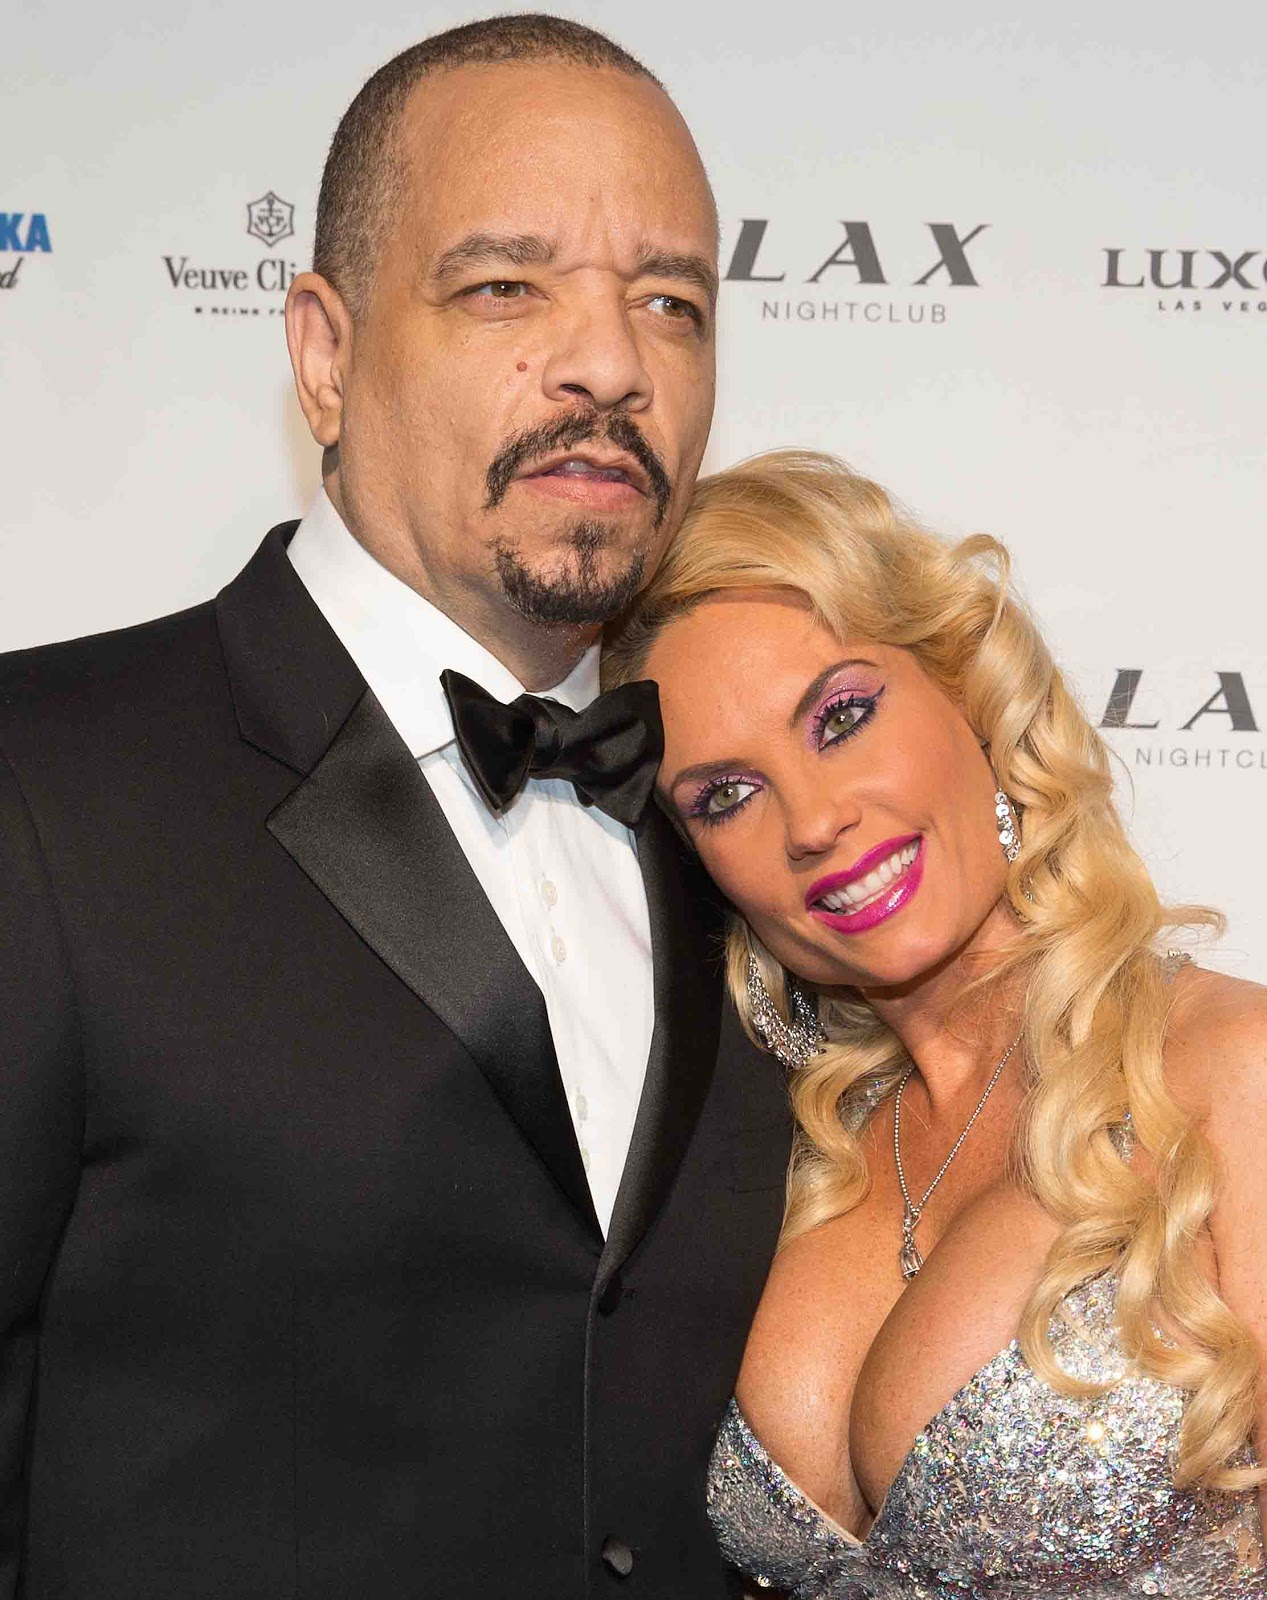 ICE T AND COCO RING IN THE VEGAS NEW YEAR